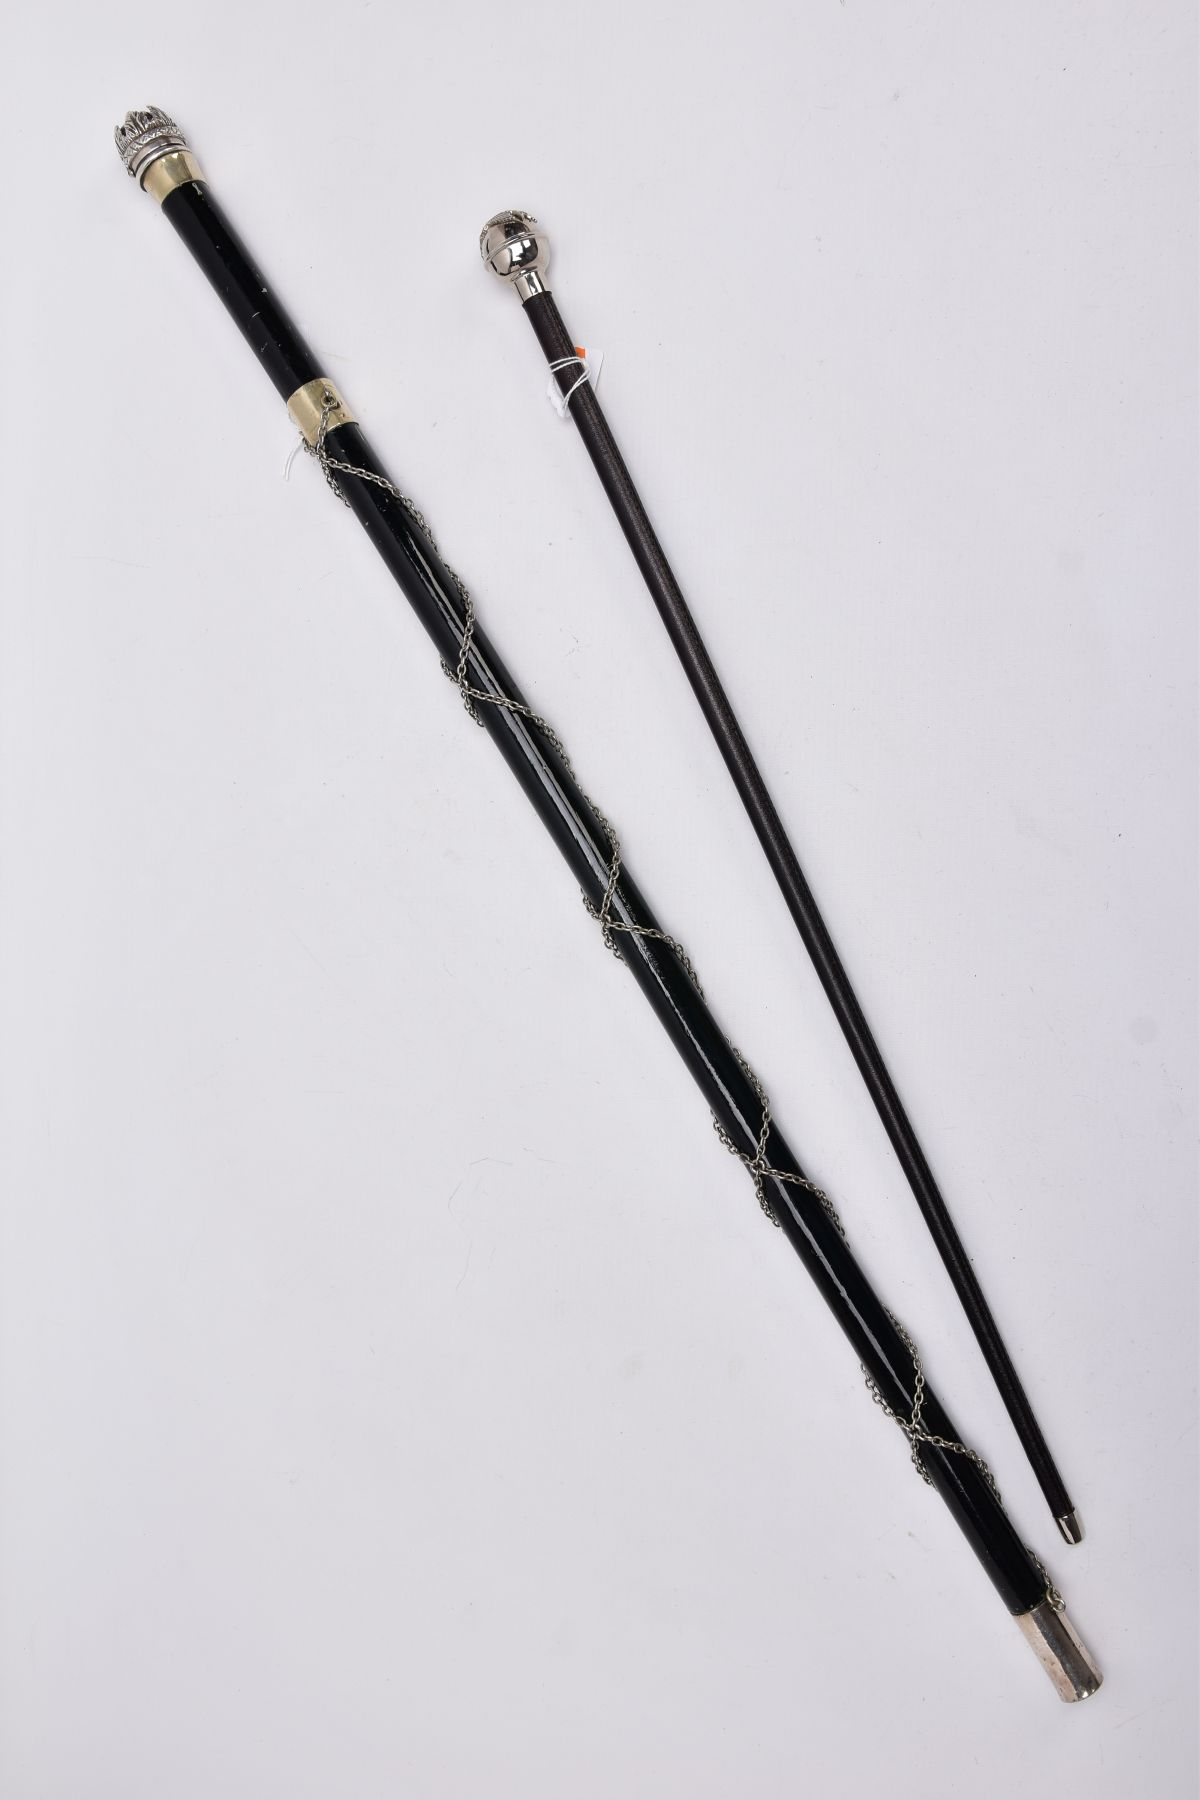 TWO MILITARY RELATED SWAGGER STYLE STICKS, to include a white metal sphere topped with white metal